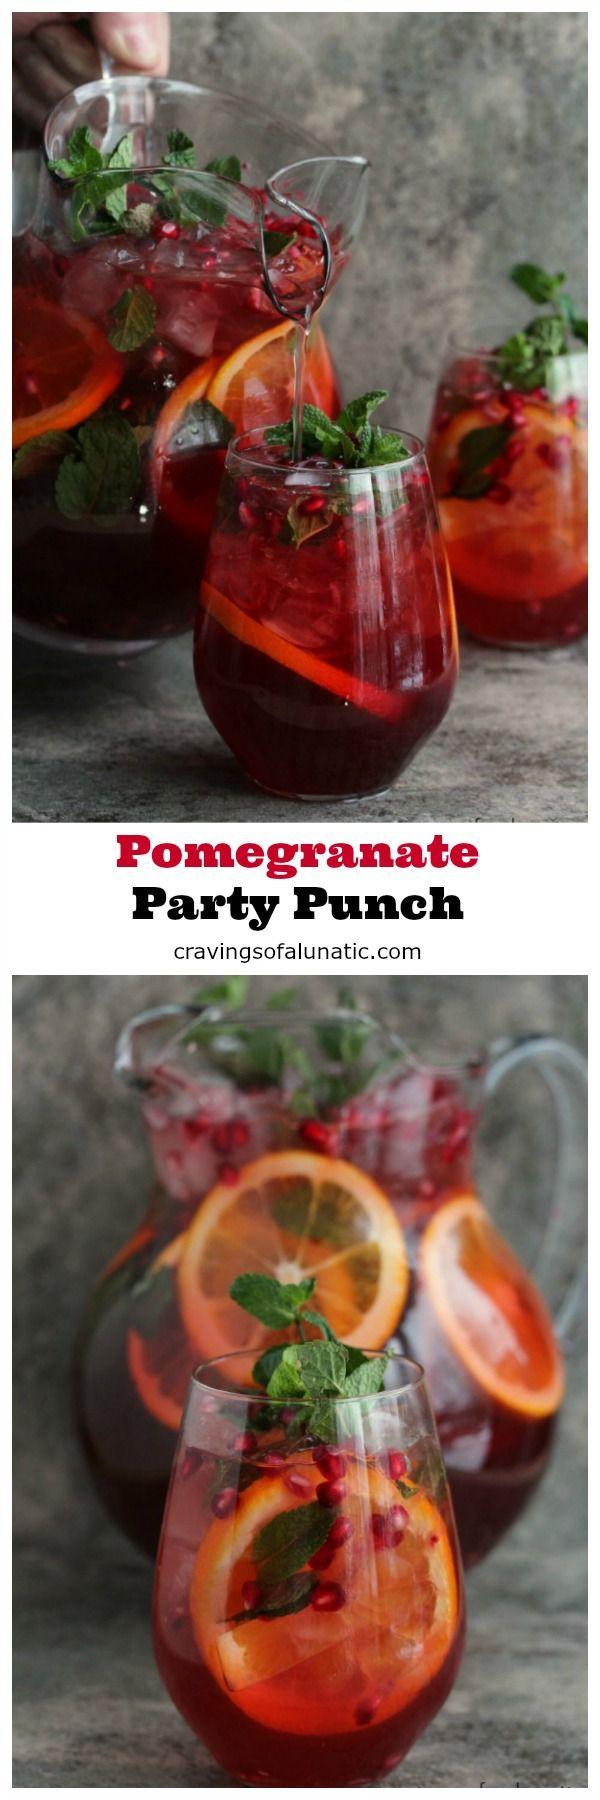 This Pomegranate Party Punch is both delicious and versatile. You can make this Spiked or Unspiked. Perfect for parties, have one of each! #punch #drink #holidays